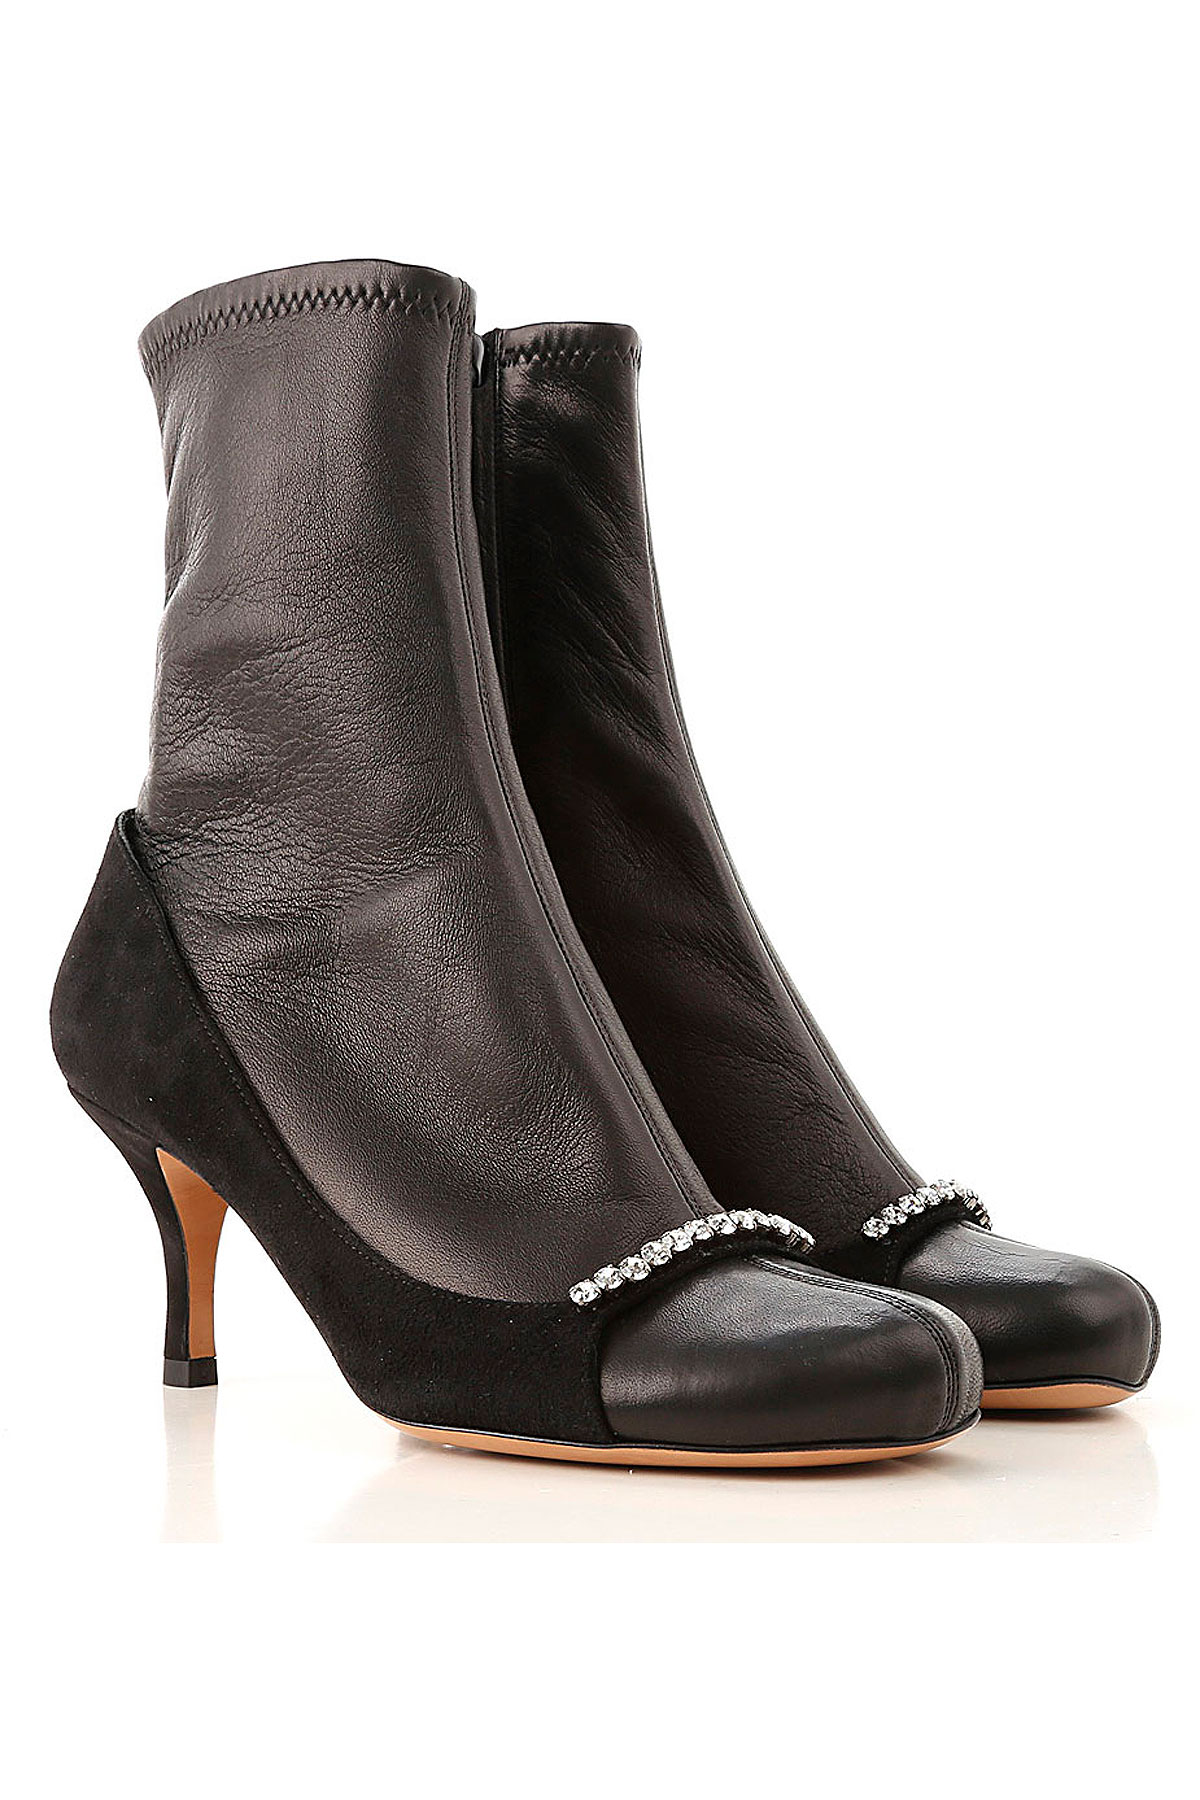 Valentino Garavani Boots for Women, Booties On Sale in Outlet, Black, Leather, 2019, 5 6 6.5 7 8 8.5